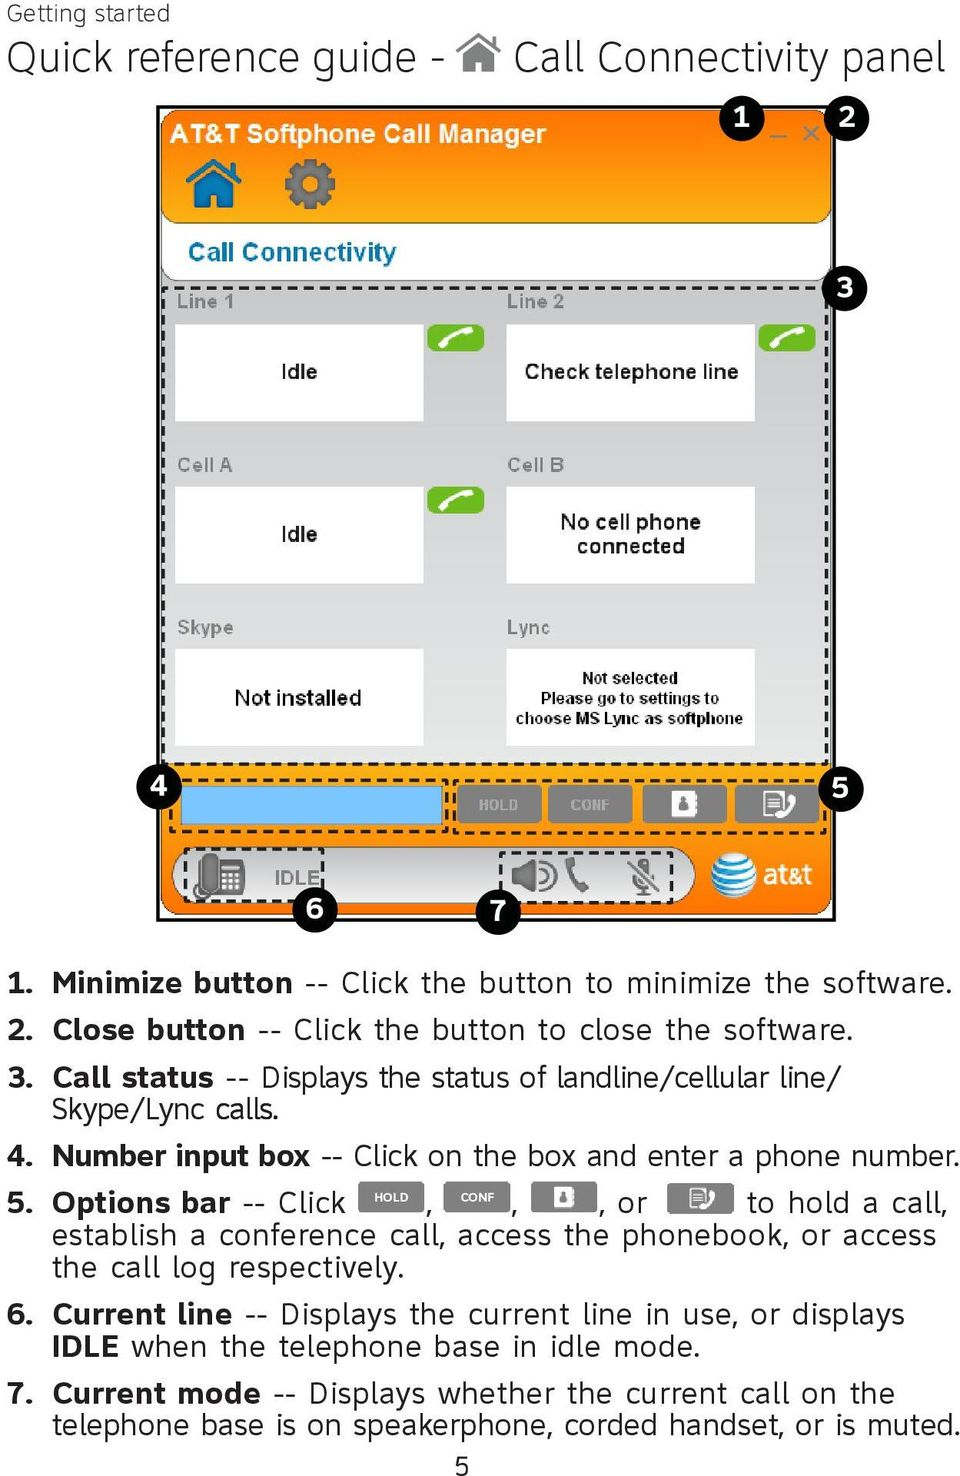 Number input box -- Click on the box and enter a phone number.